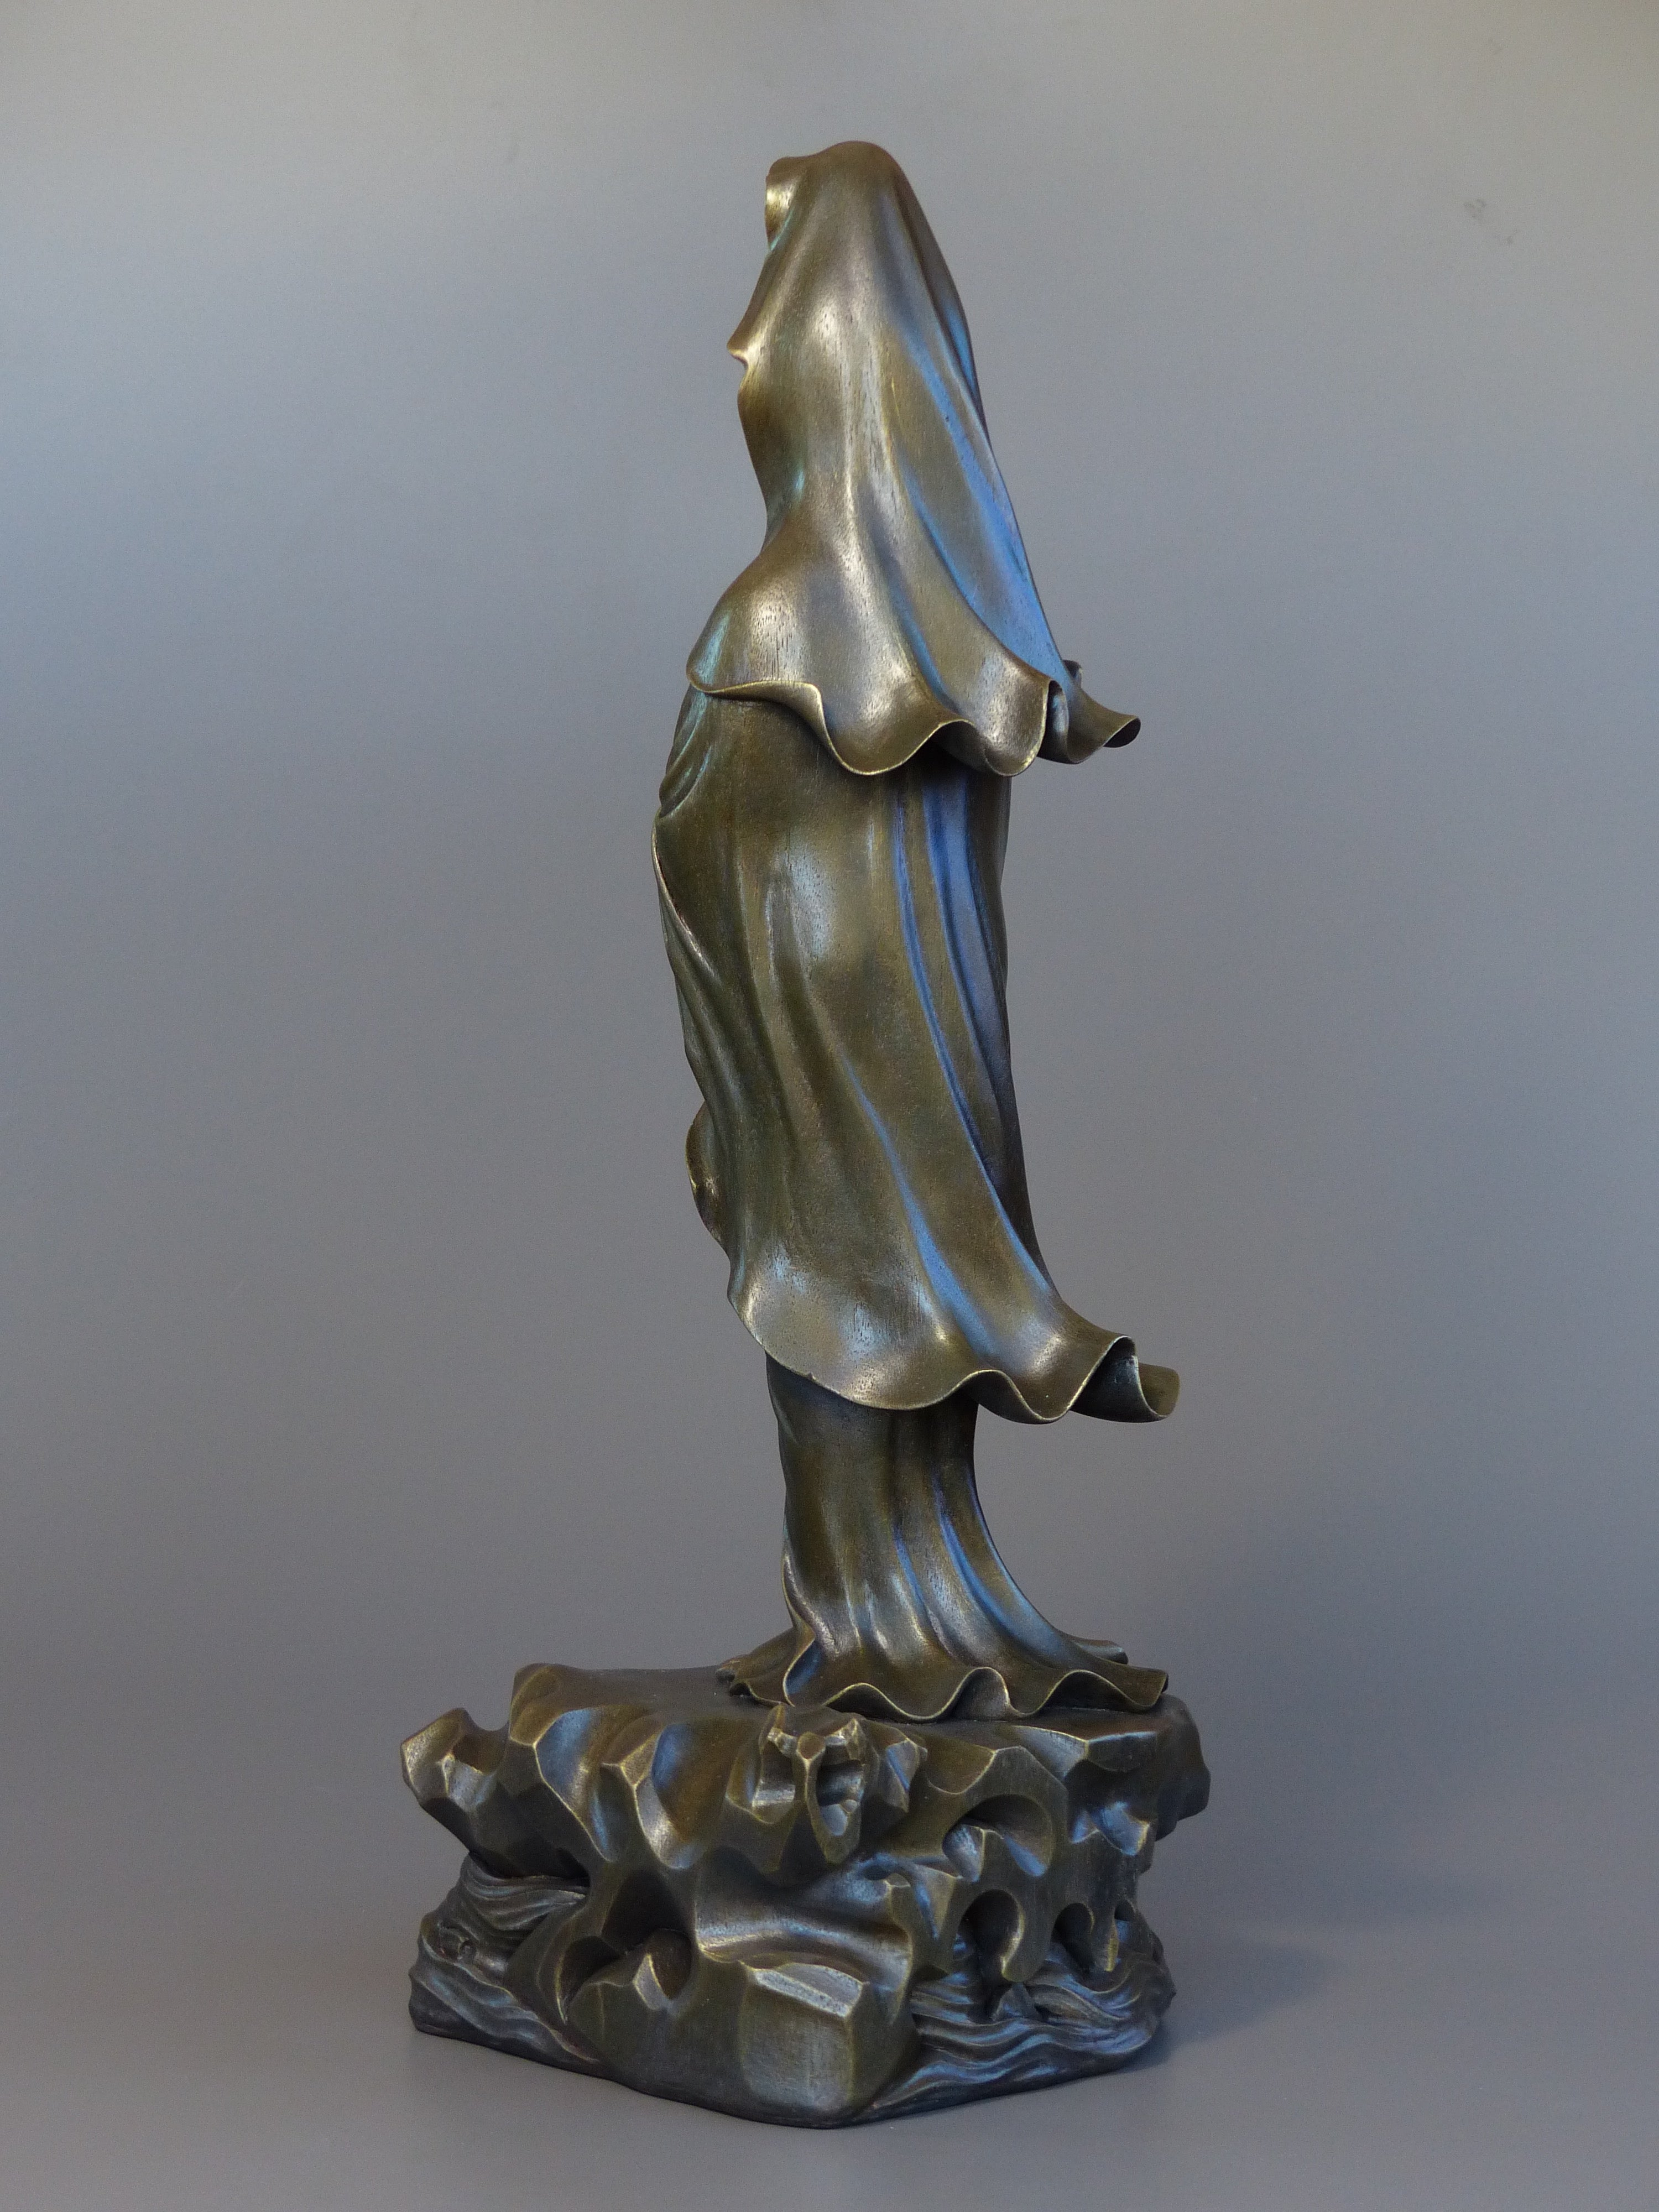 Quan Yin statue standing 24 inches bronze 3/4 back view robes blowing in the wind